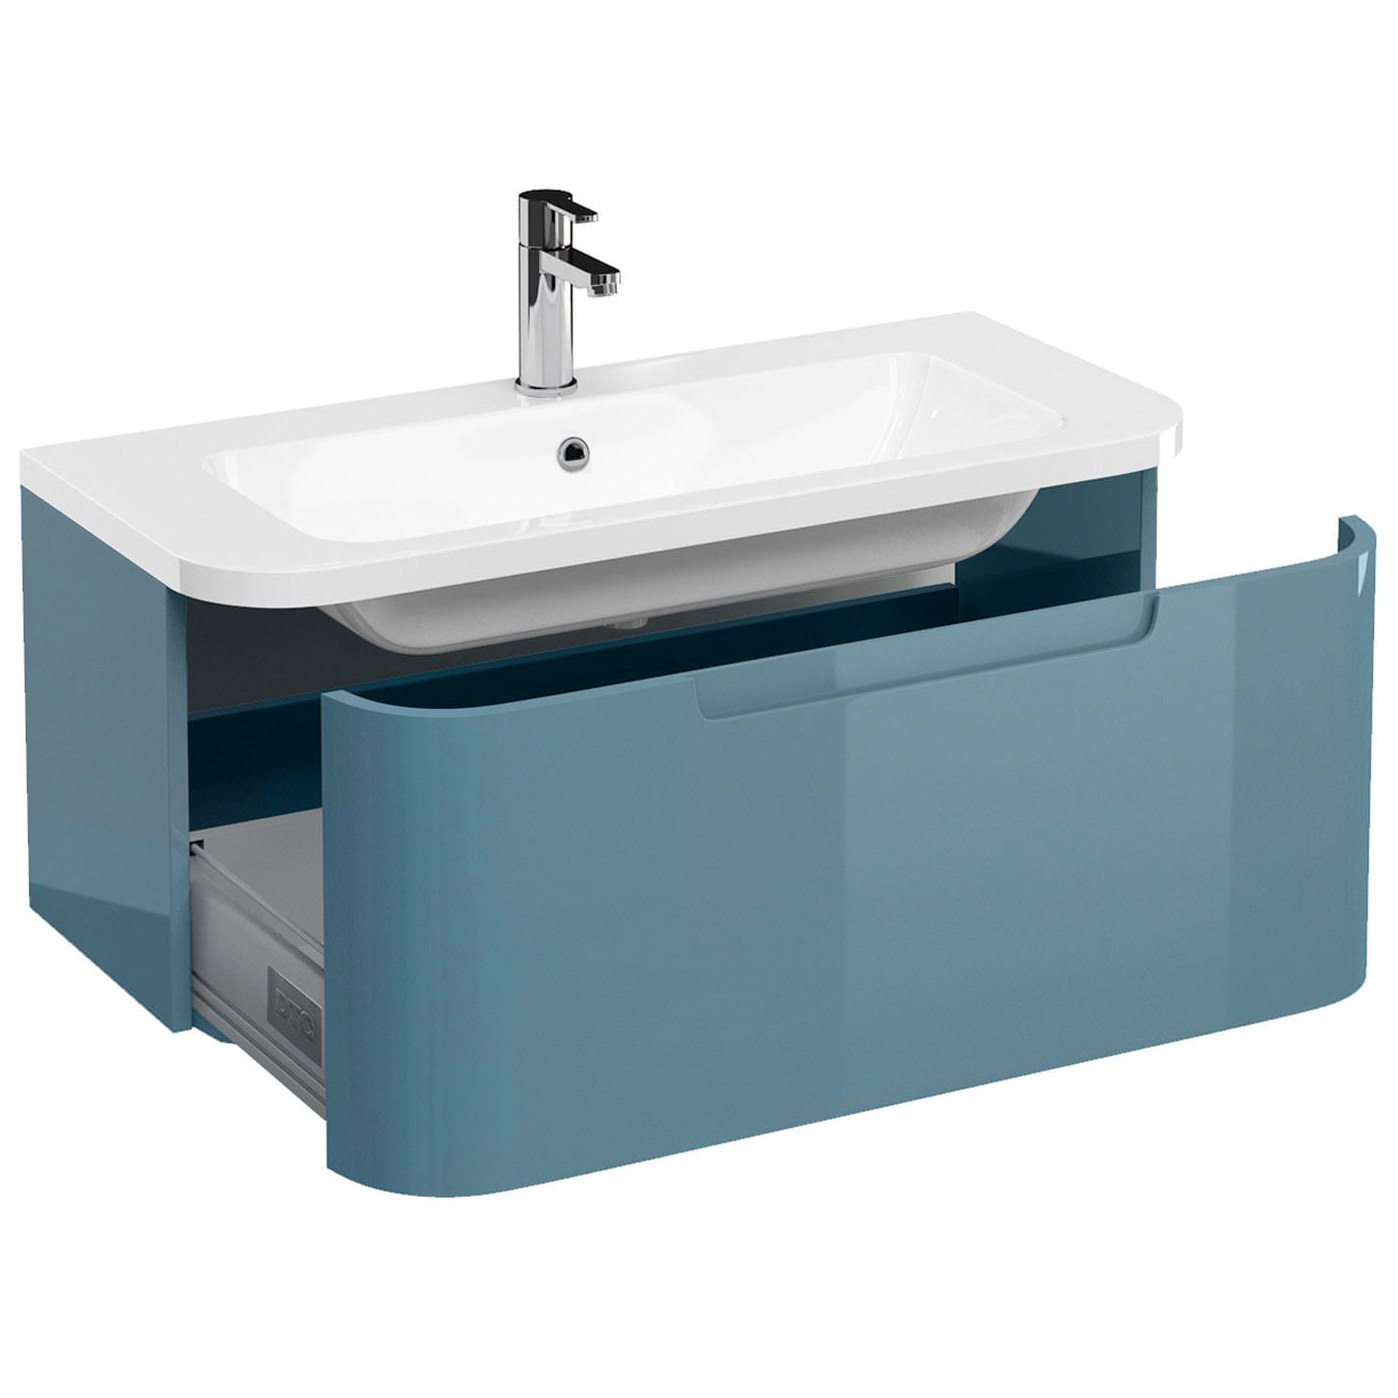 ... Additional image of Britton Aqua Cabinets Compact 900mm 1 Drawer Wall  Hung Basin Vanity Unit ...